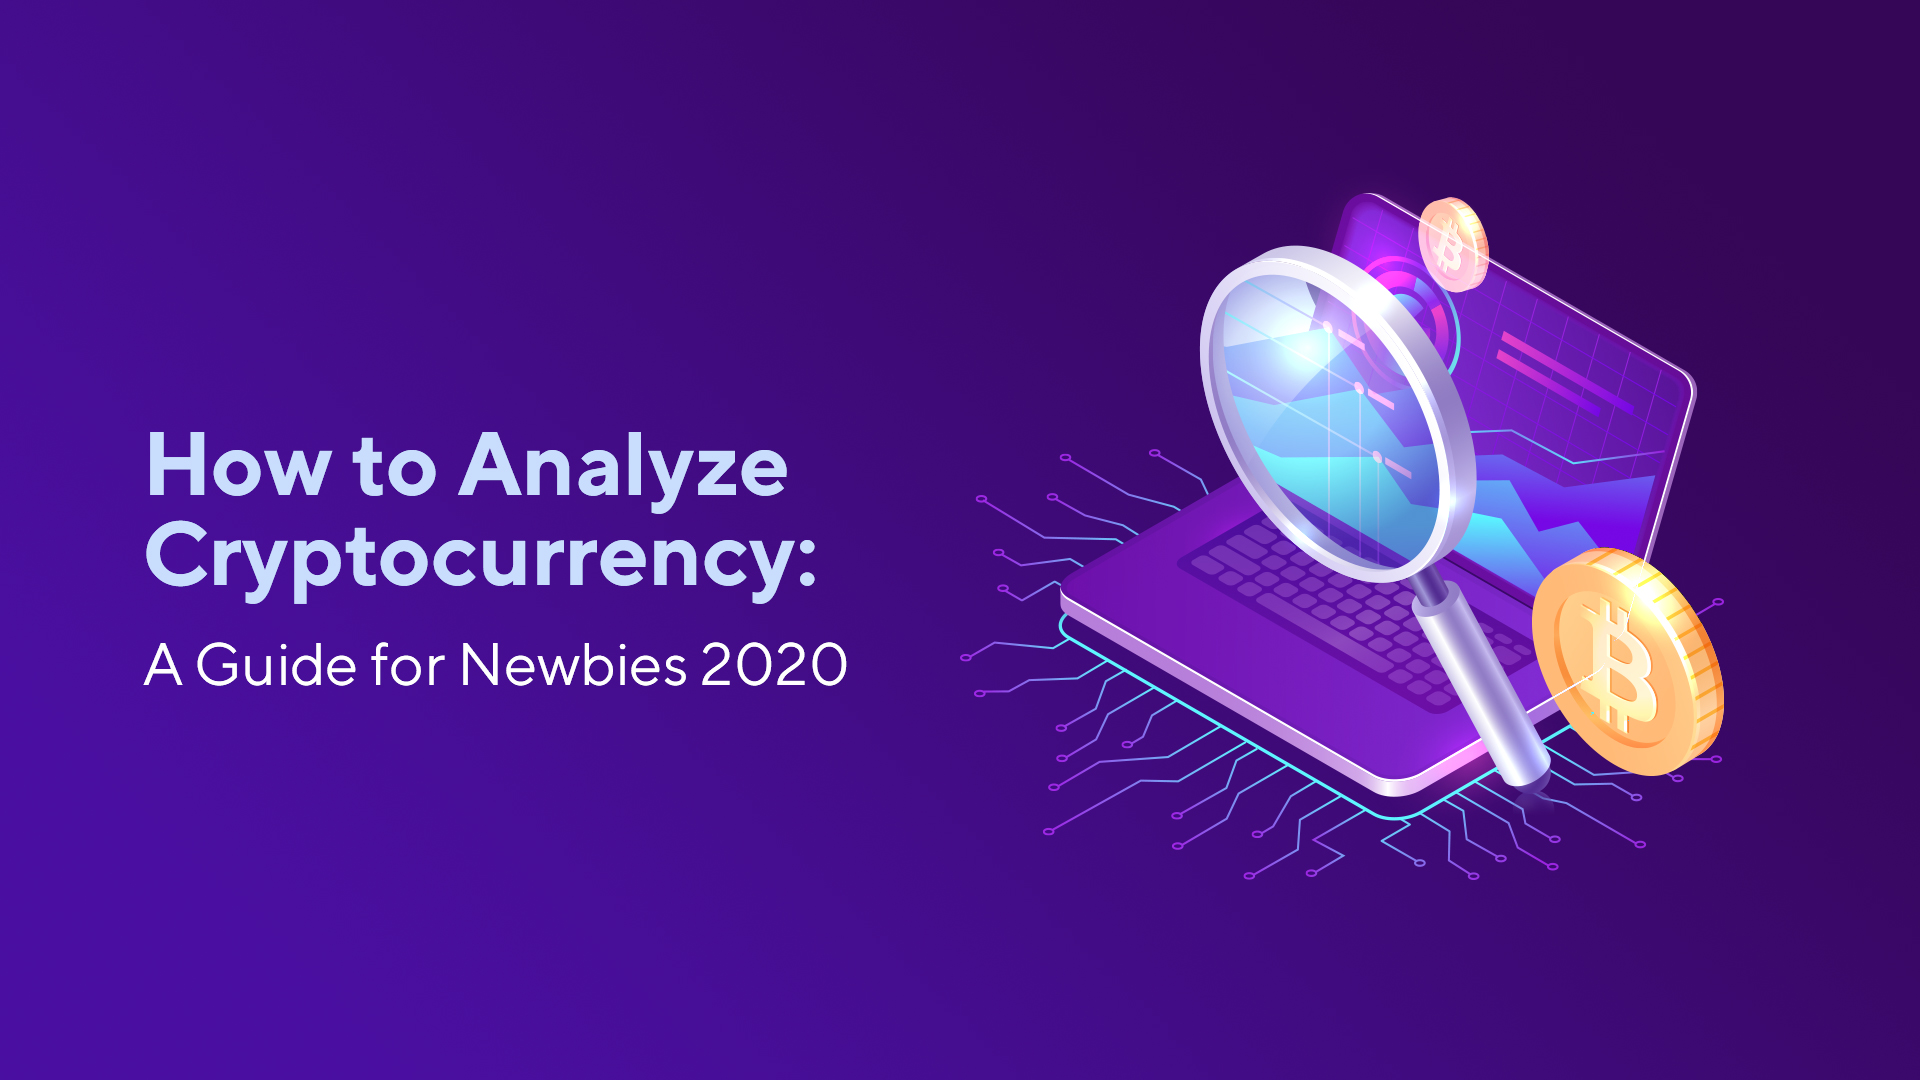 How to Analyze Cryptocurrency: A Guide for Newbies 2020